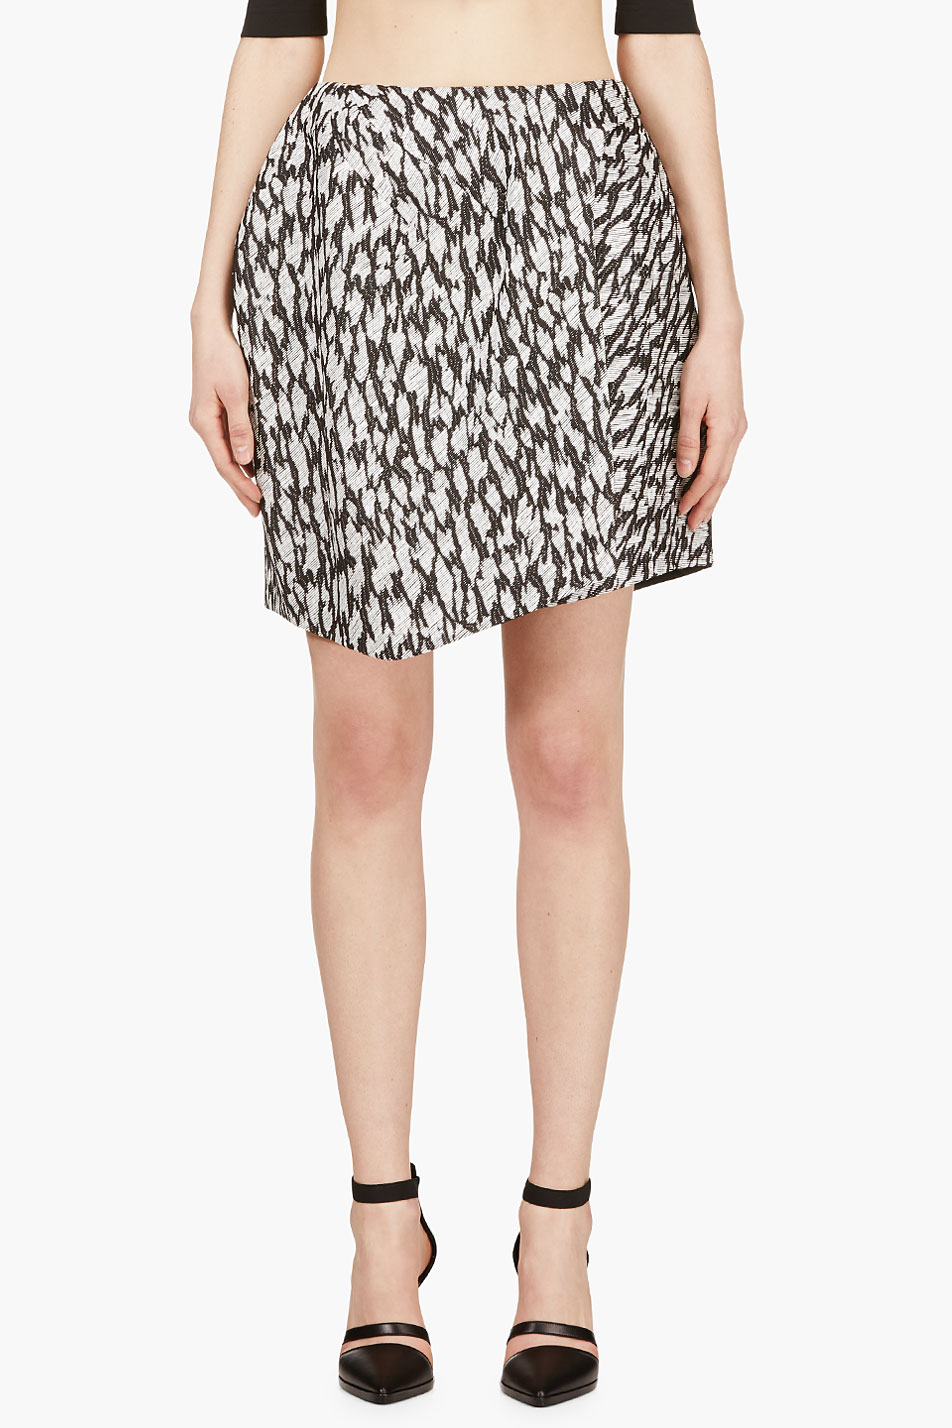 mugler black and white leopard jacquard skirt